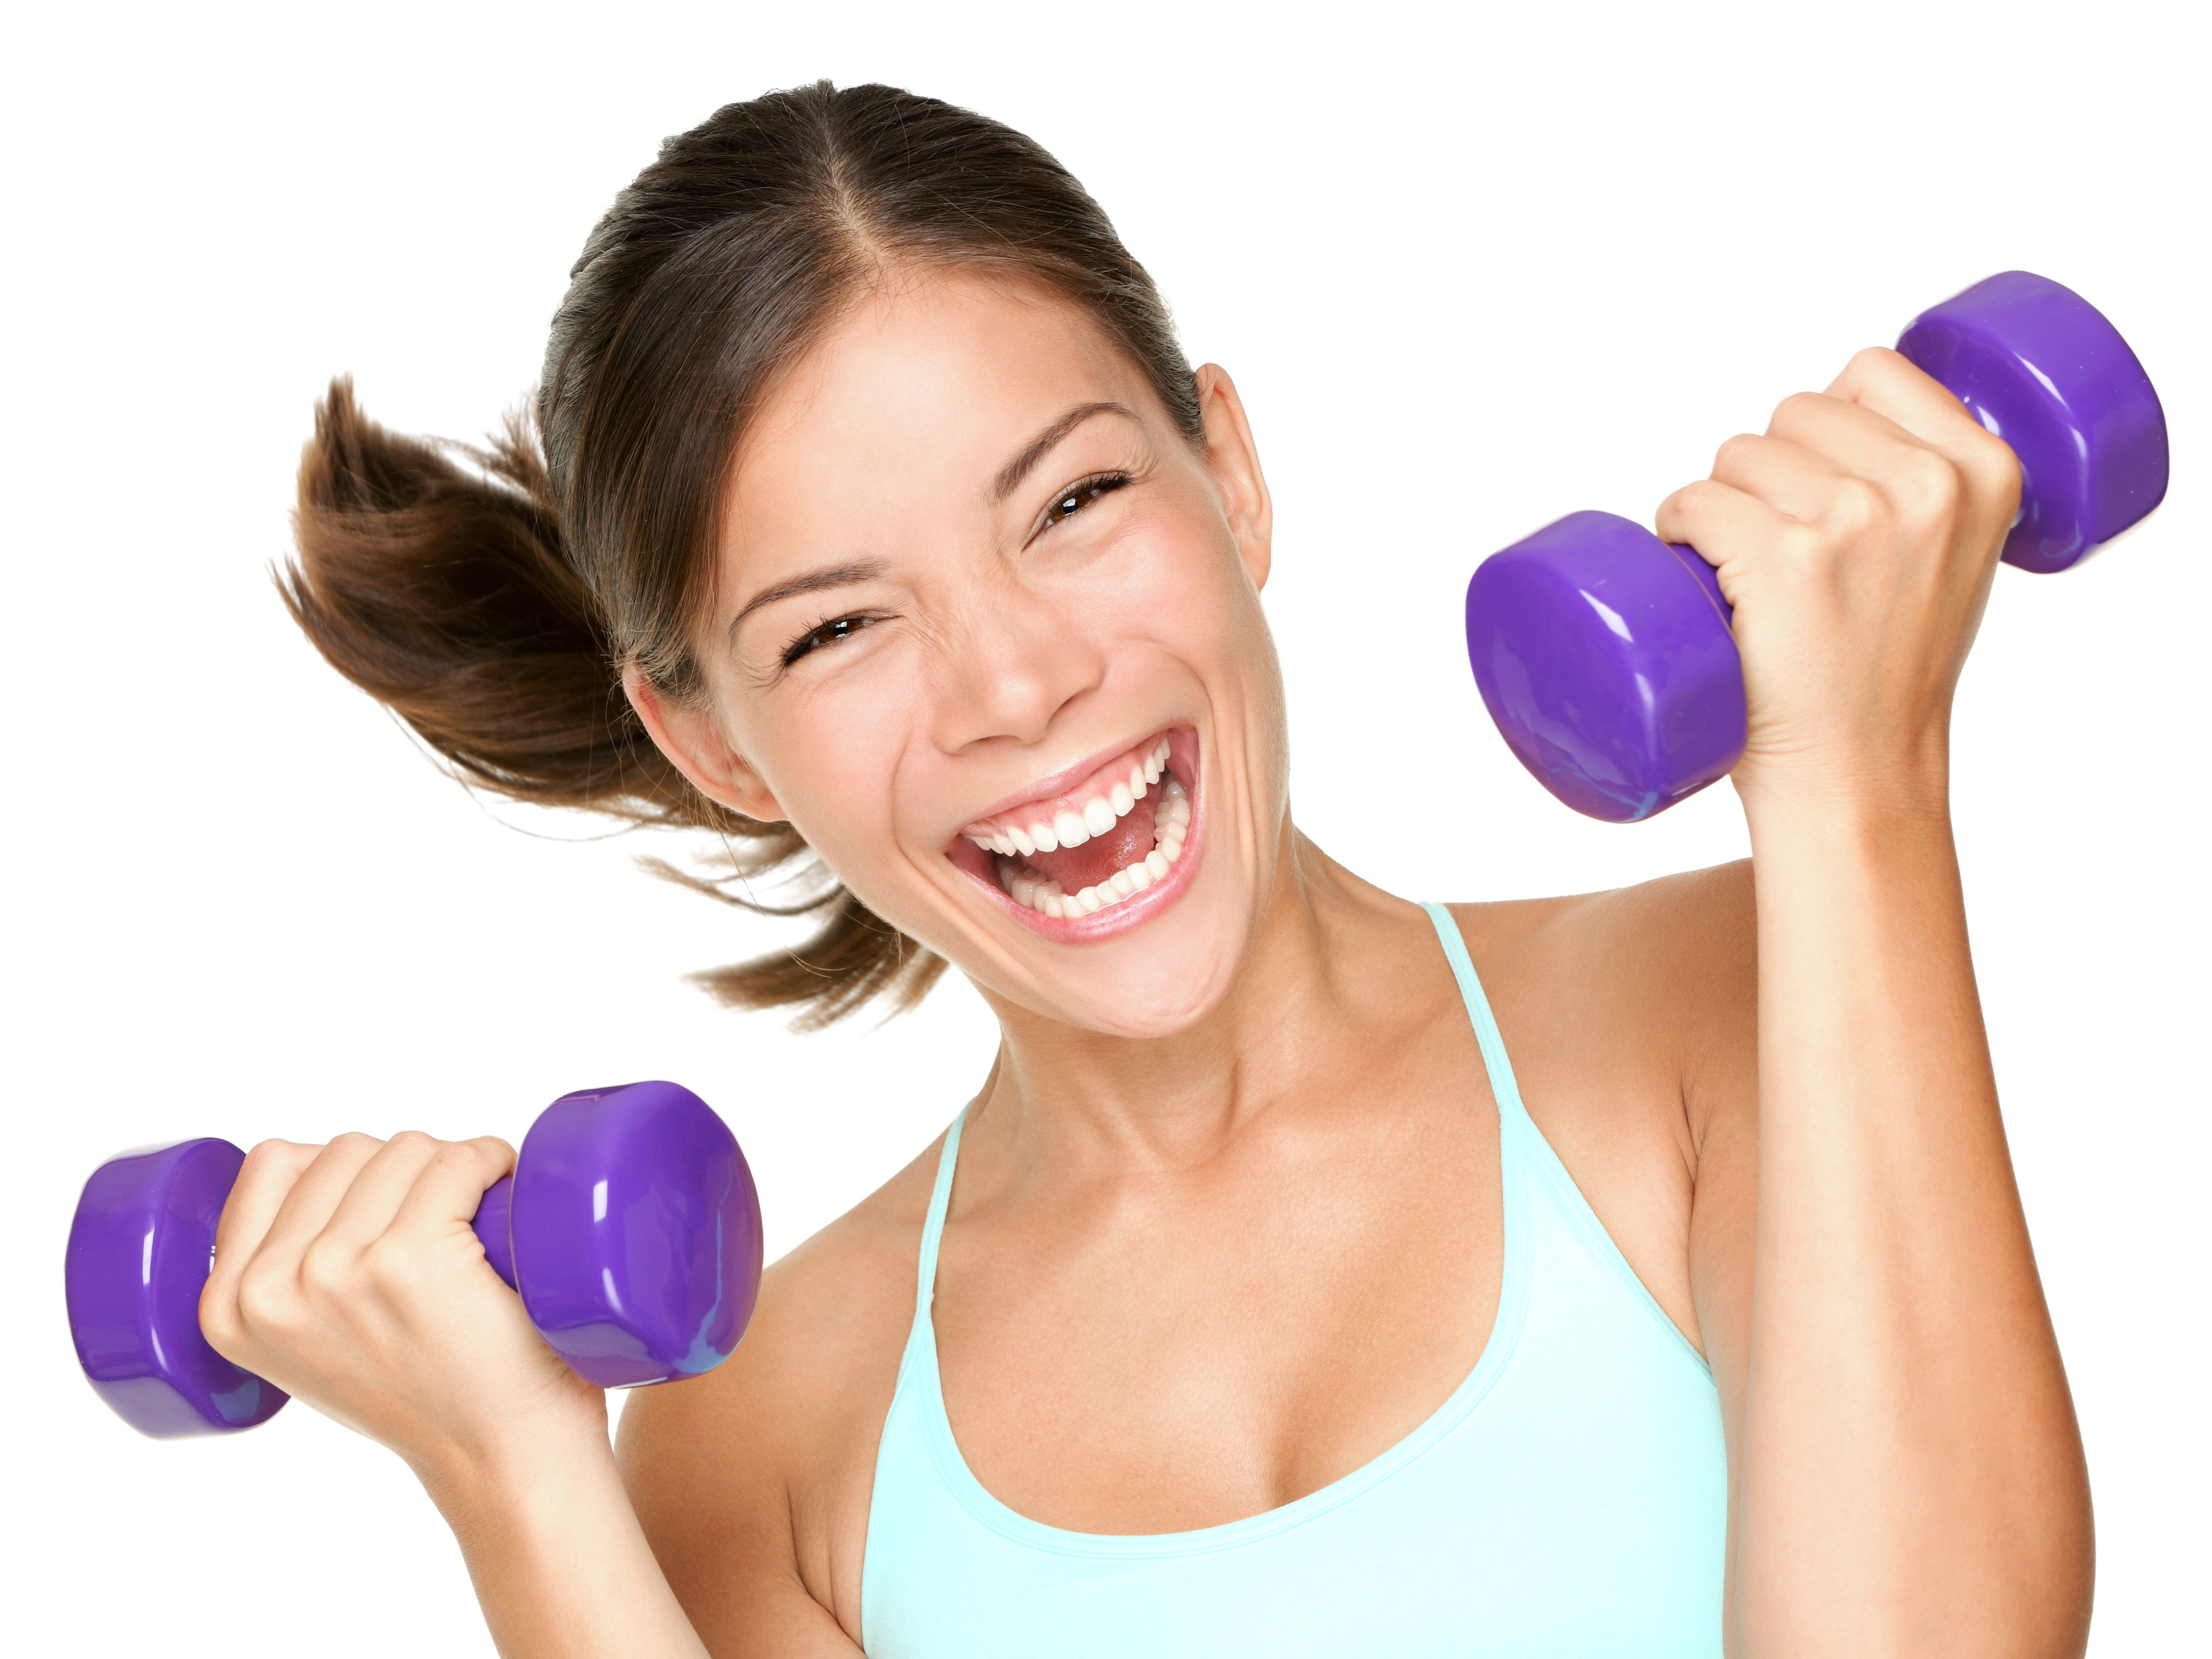 happy-fitness-woman-lifting-dumbbells